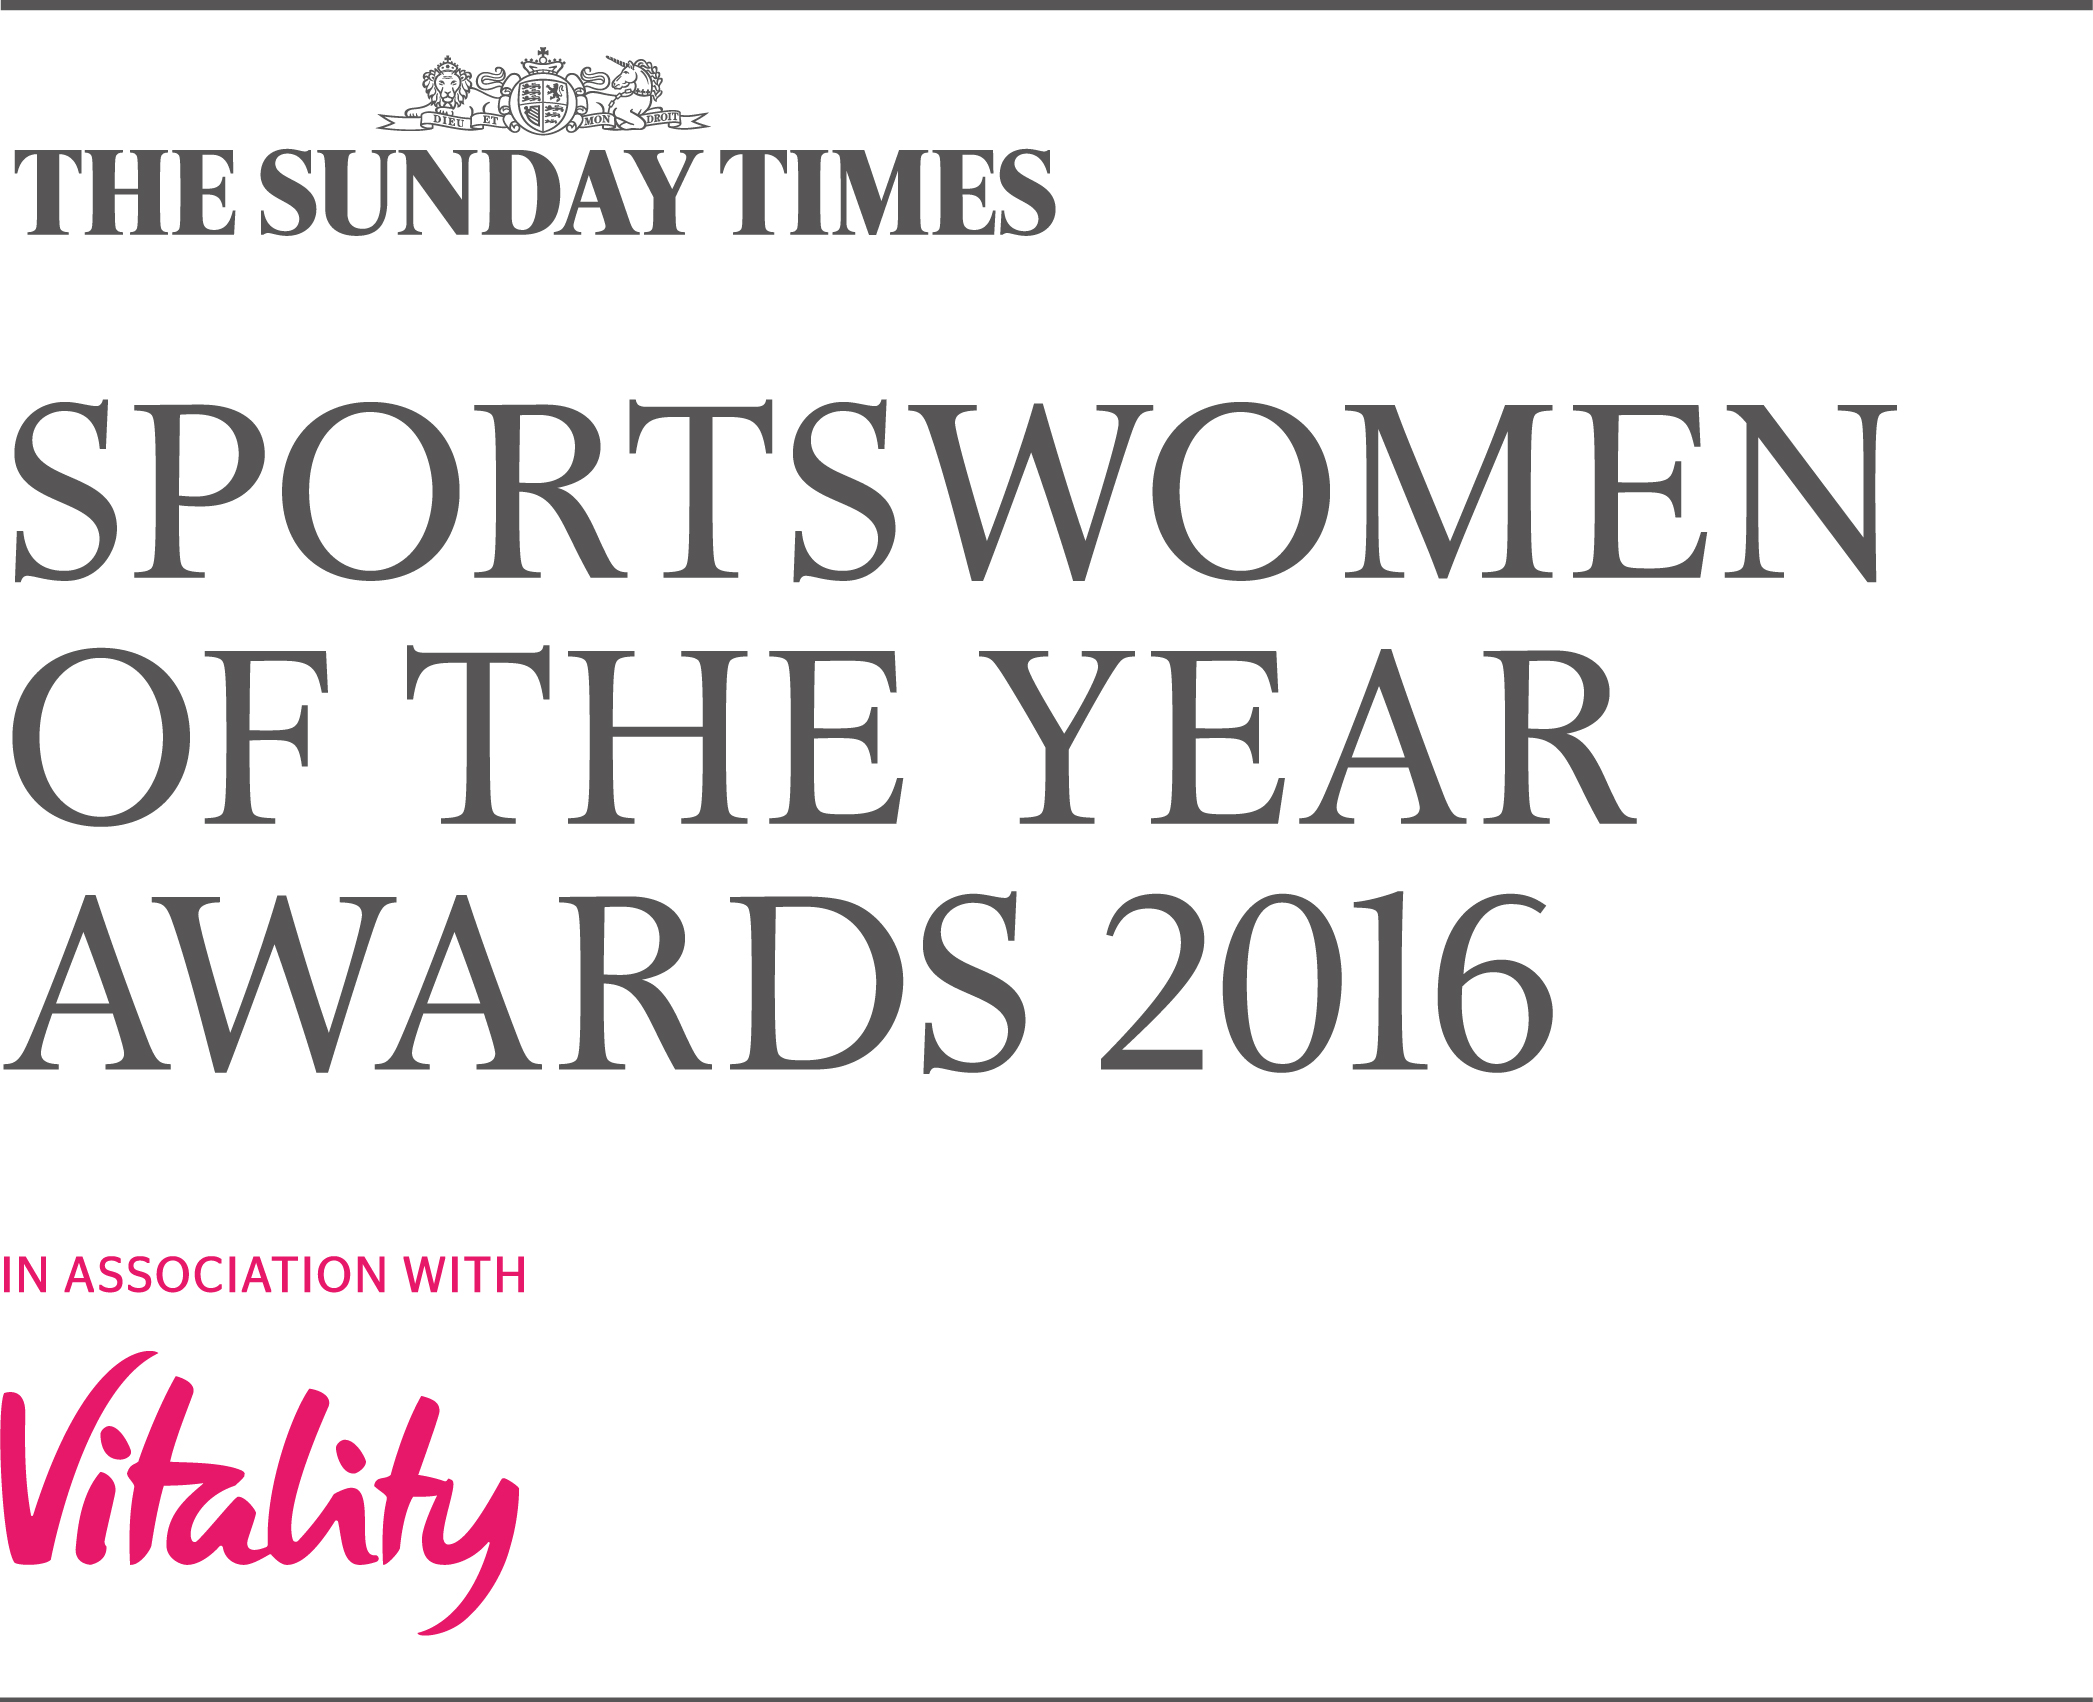 Vote in The Sunday Times Sportswomen of the Year Awards